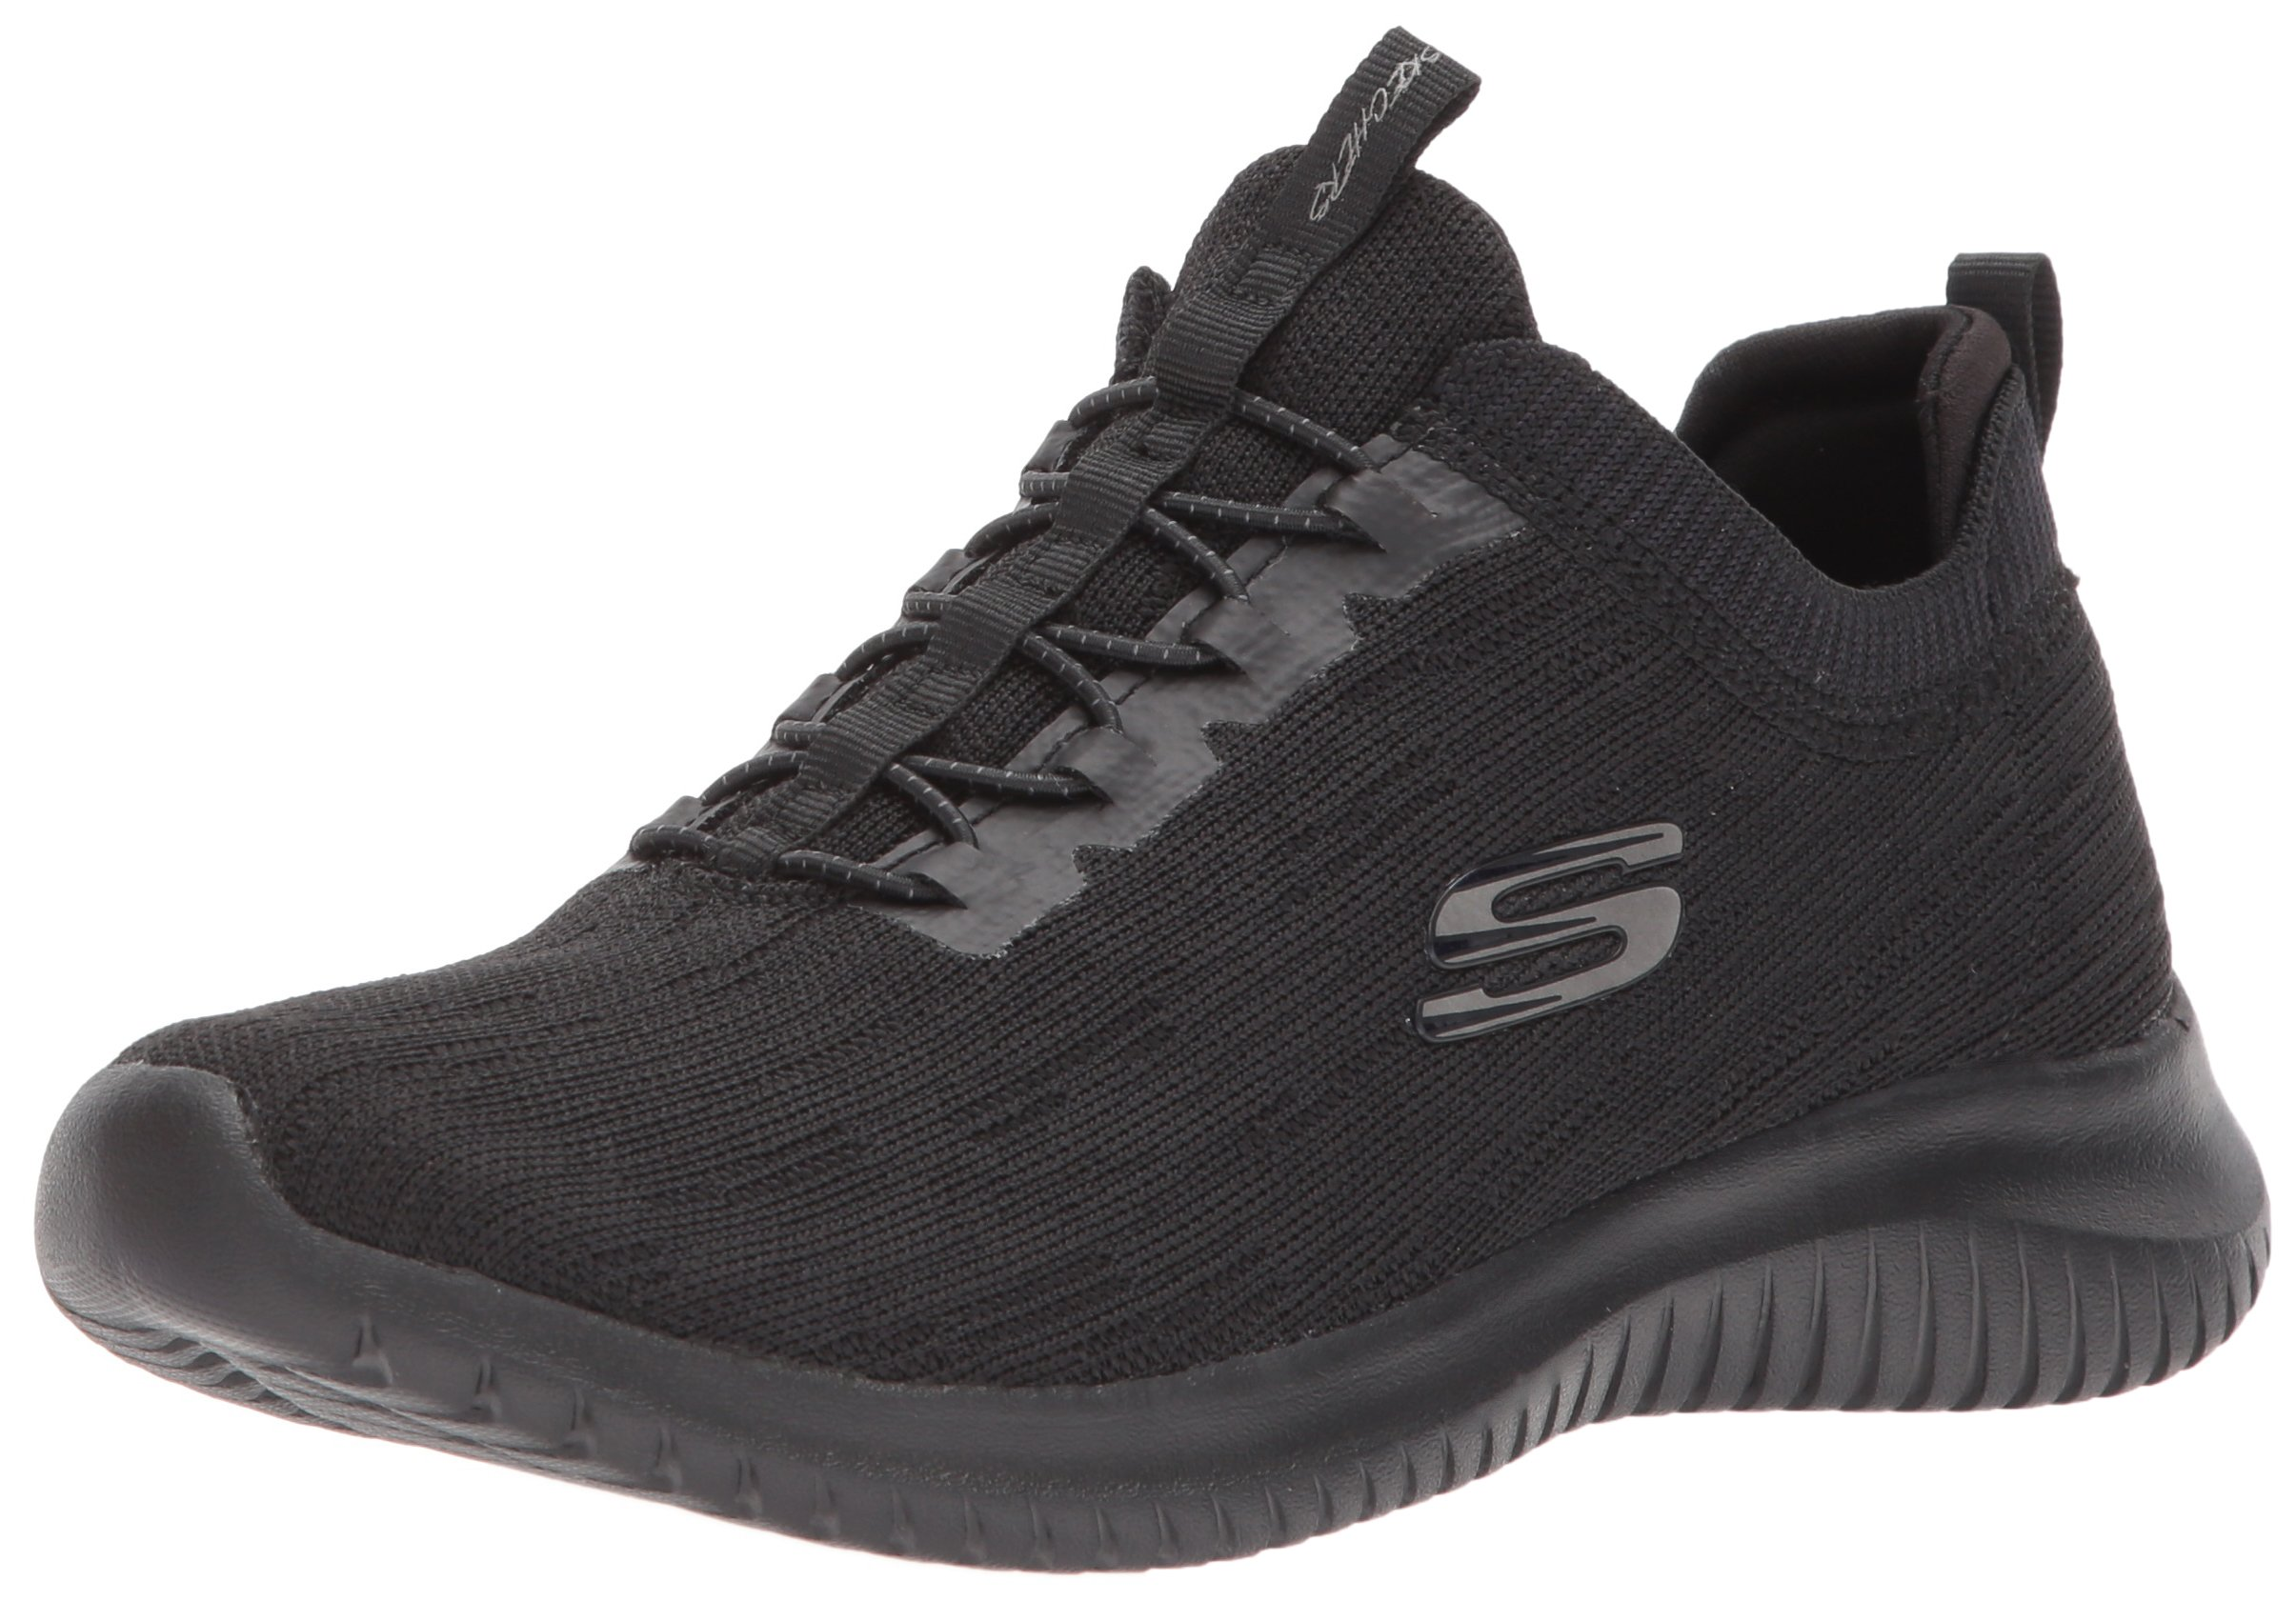 Skechers Sport Women's Ultra Flex Bright Horizon Sneaker,8 B(M) US,Black/Black